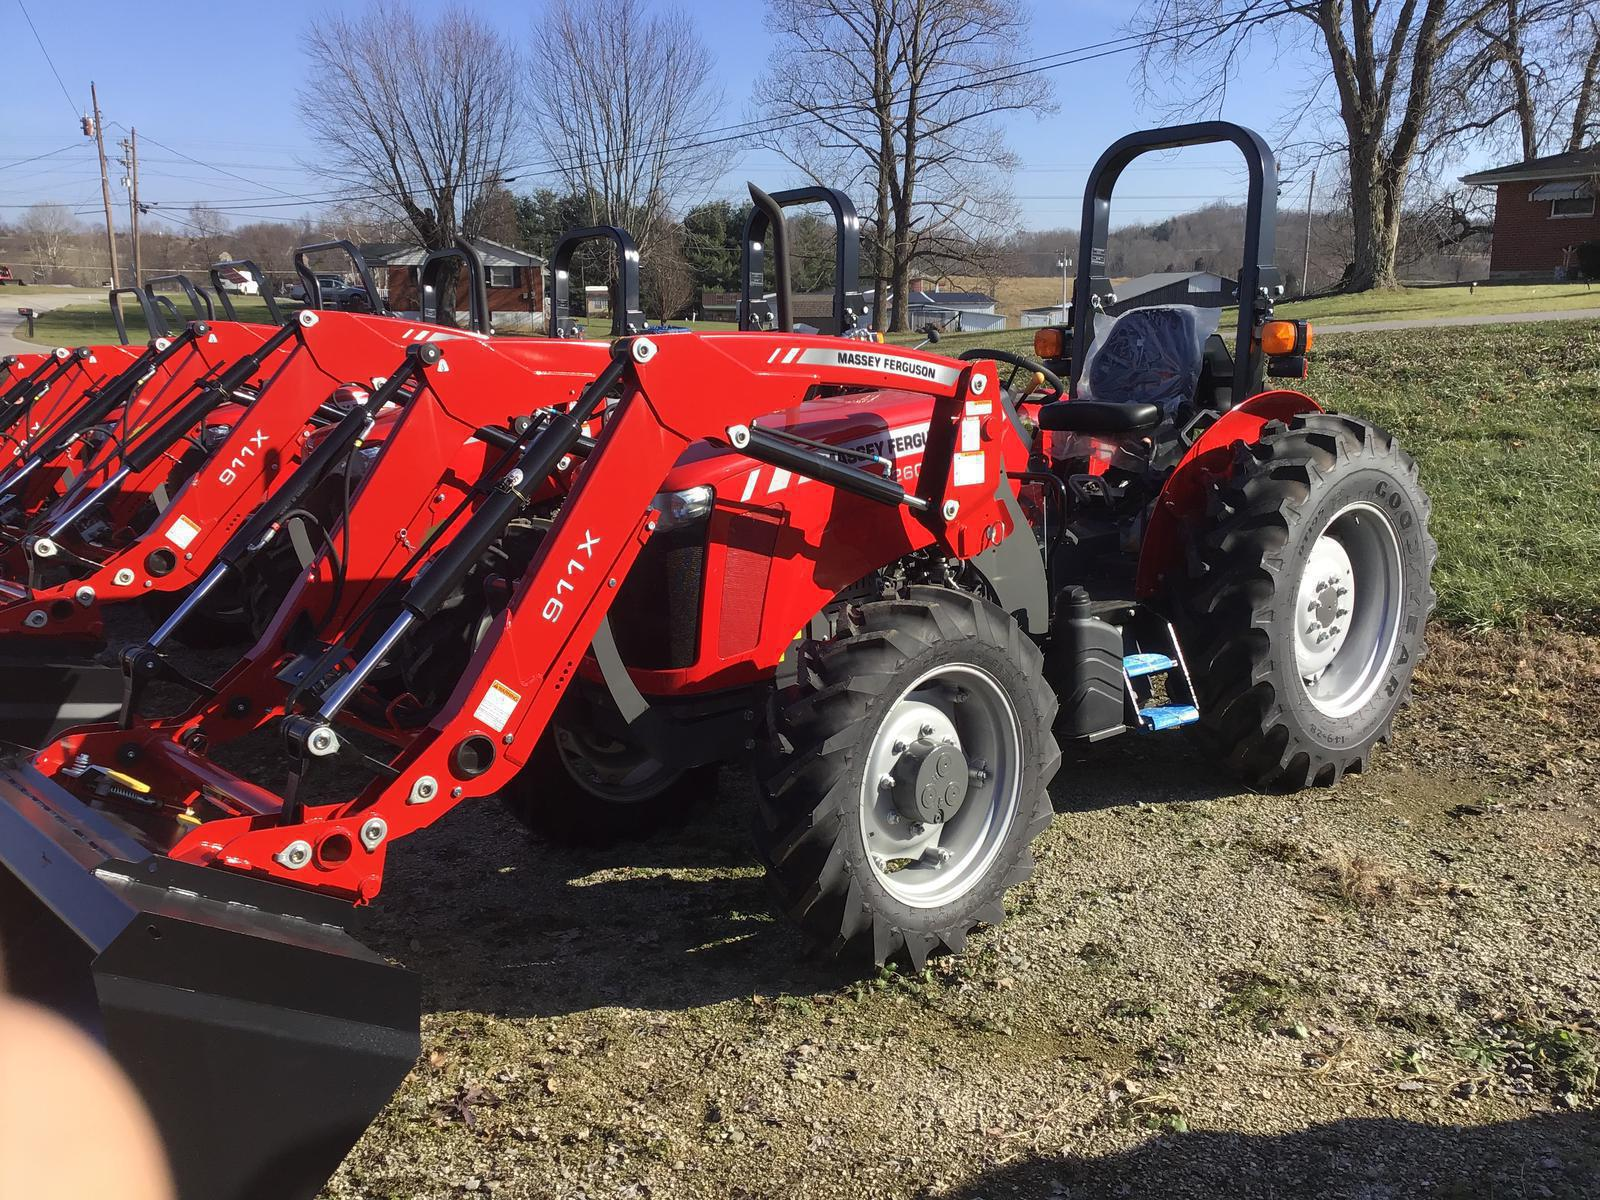 Inventory Anderson Equipment Company Inc  Falmouth, KY 859-654-8501